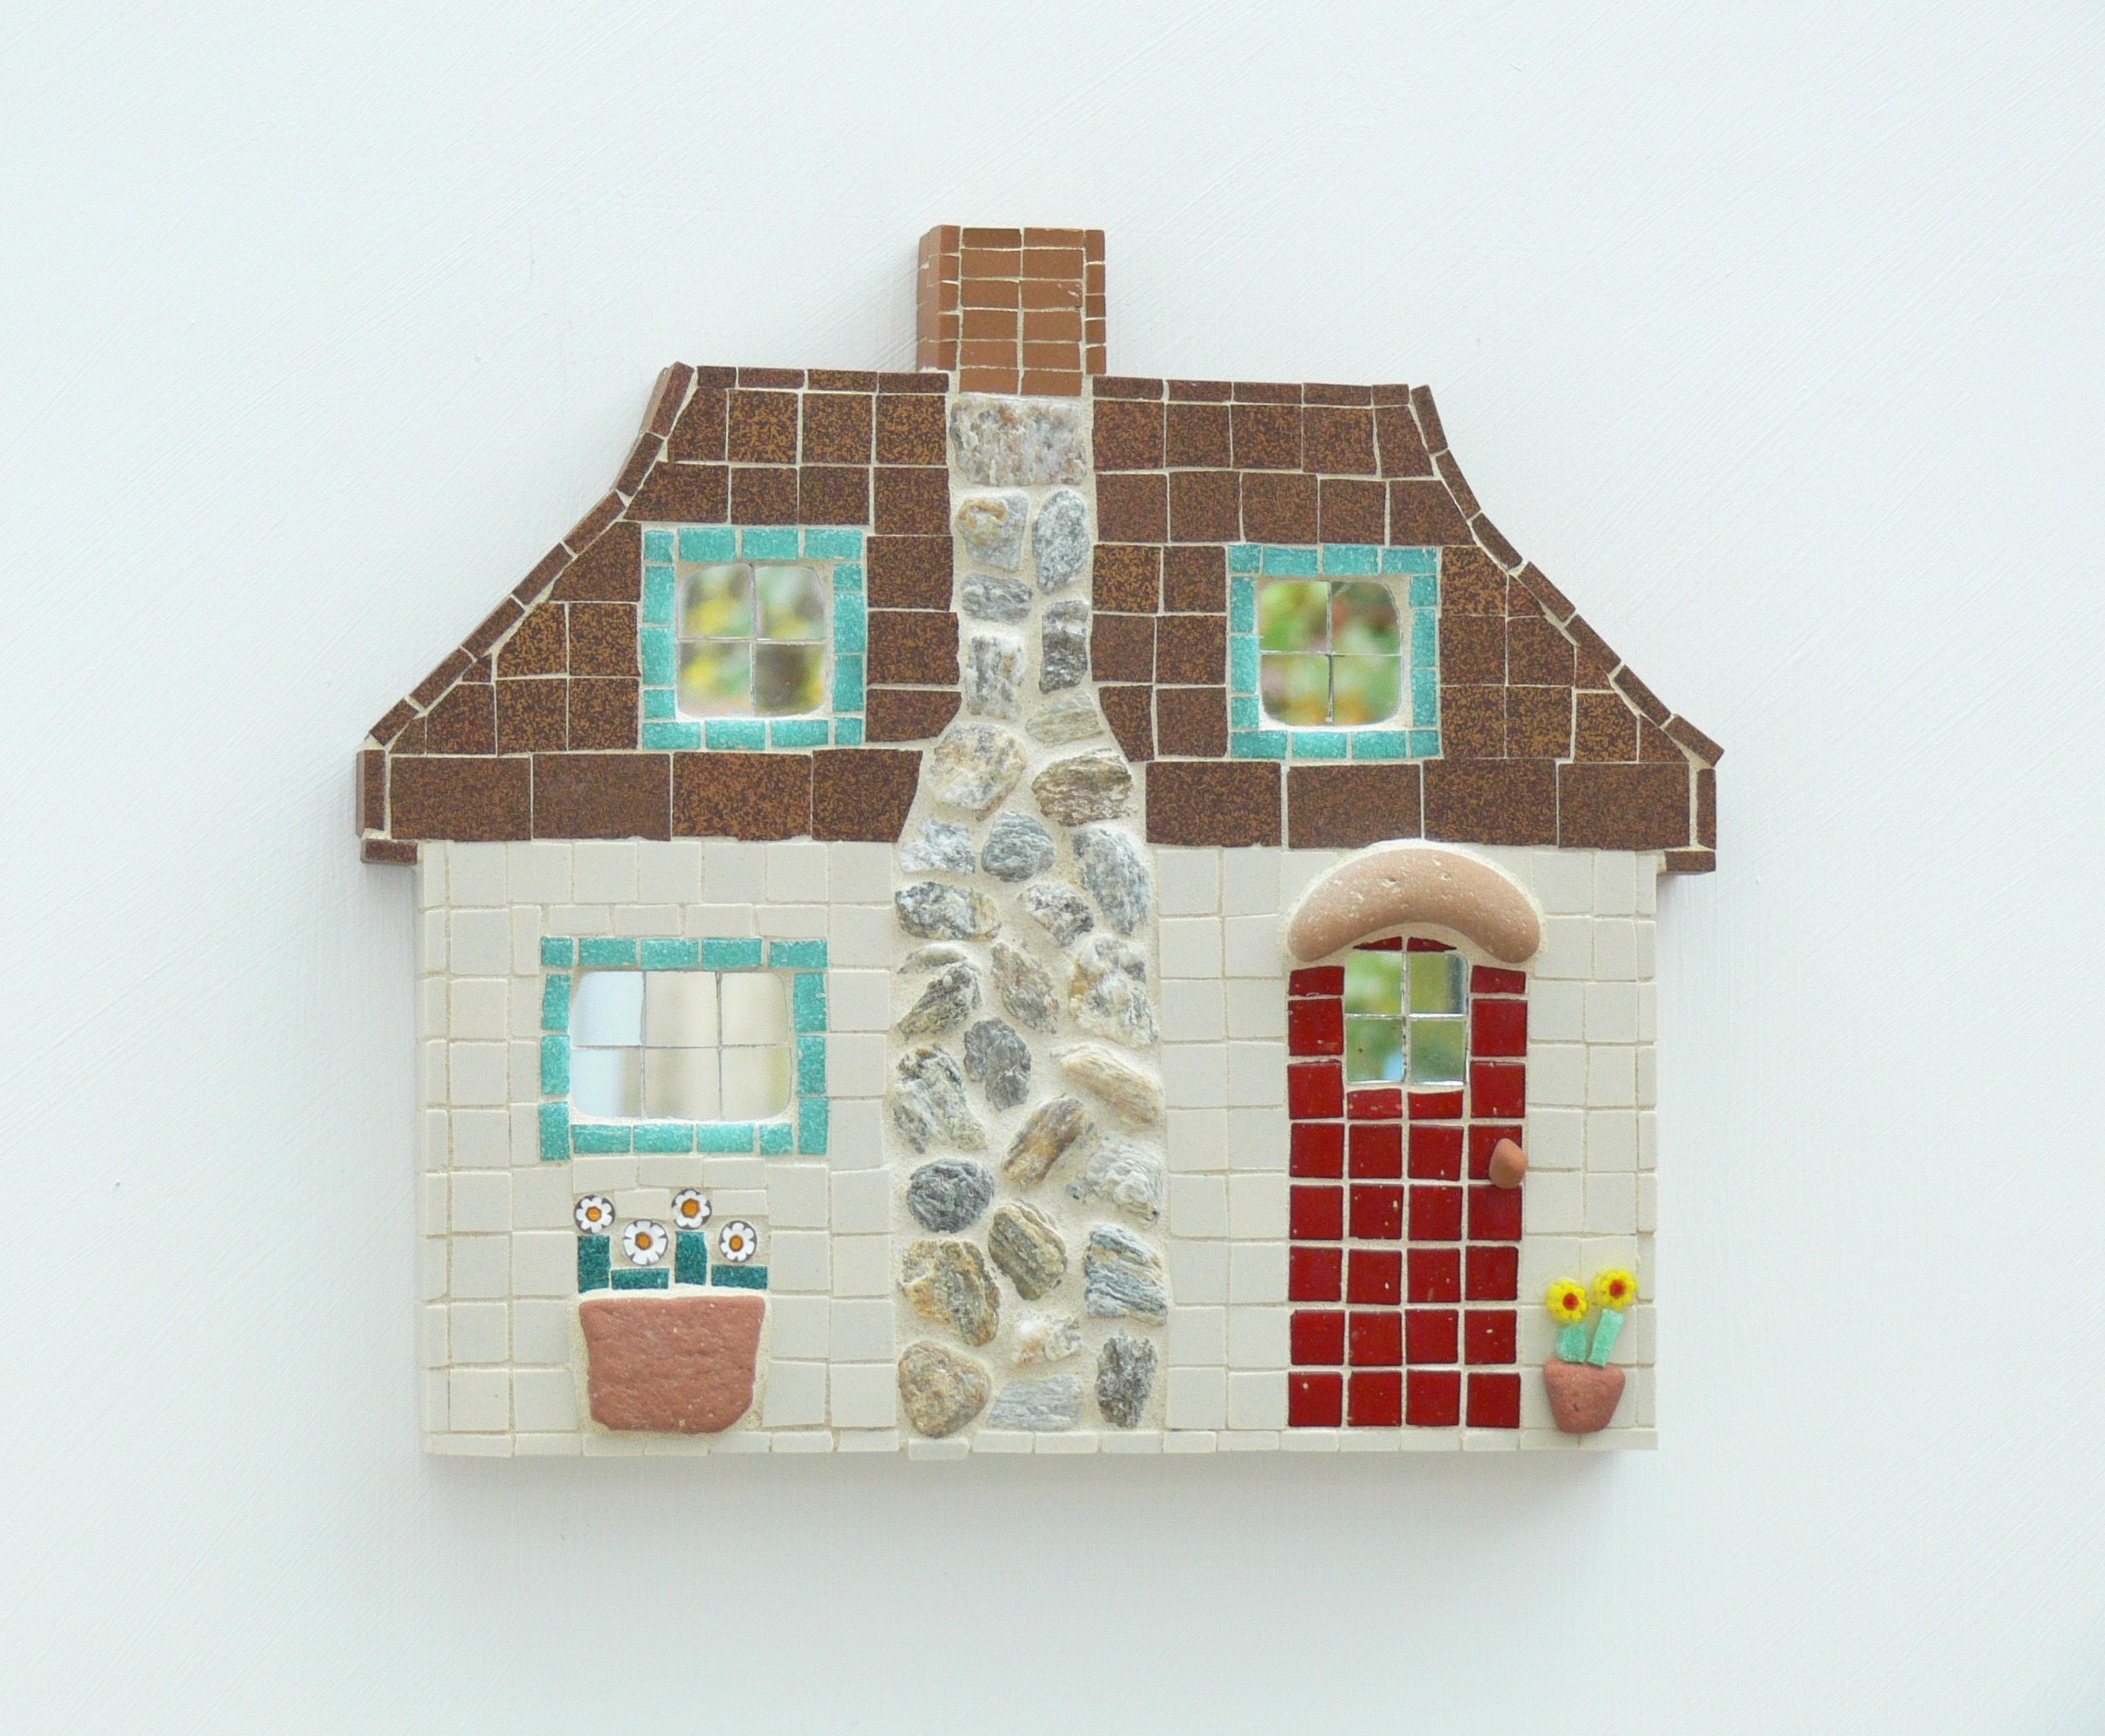 Cotswold cottage mosaic wall art by rana cullimore www